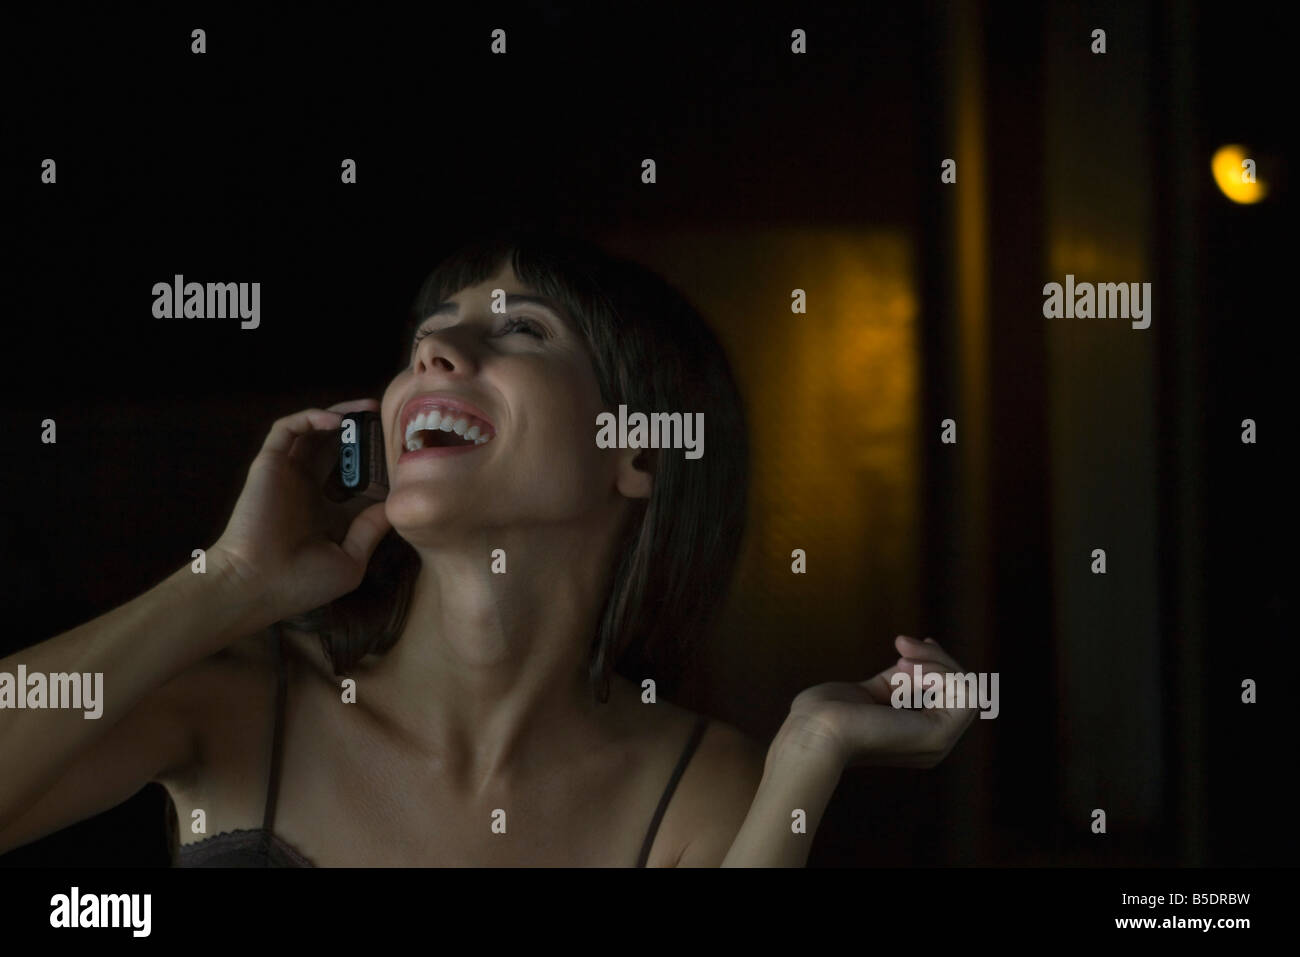 Woman talking on cell phone in darkly lit room, head back, laughing - Stock Image